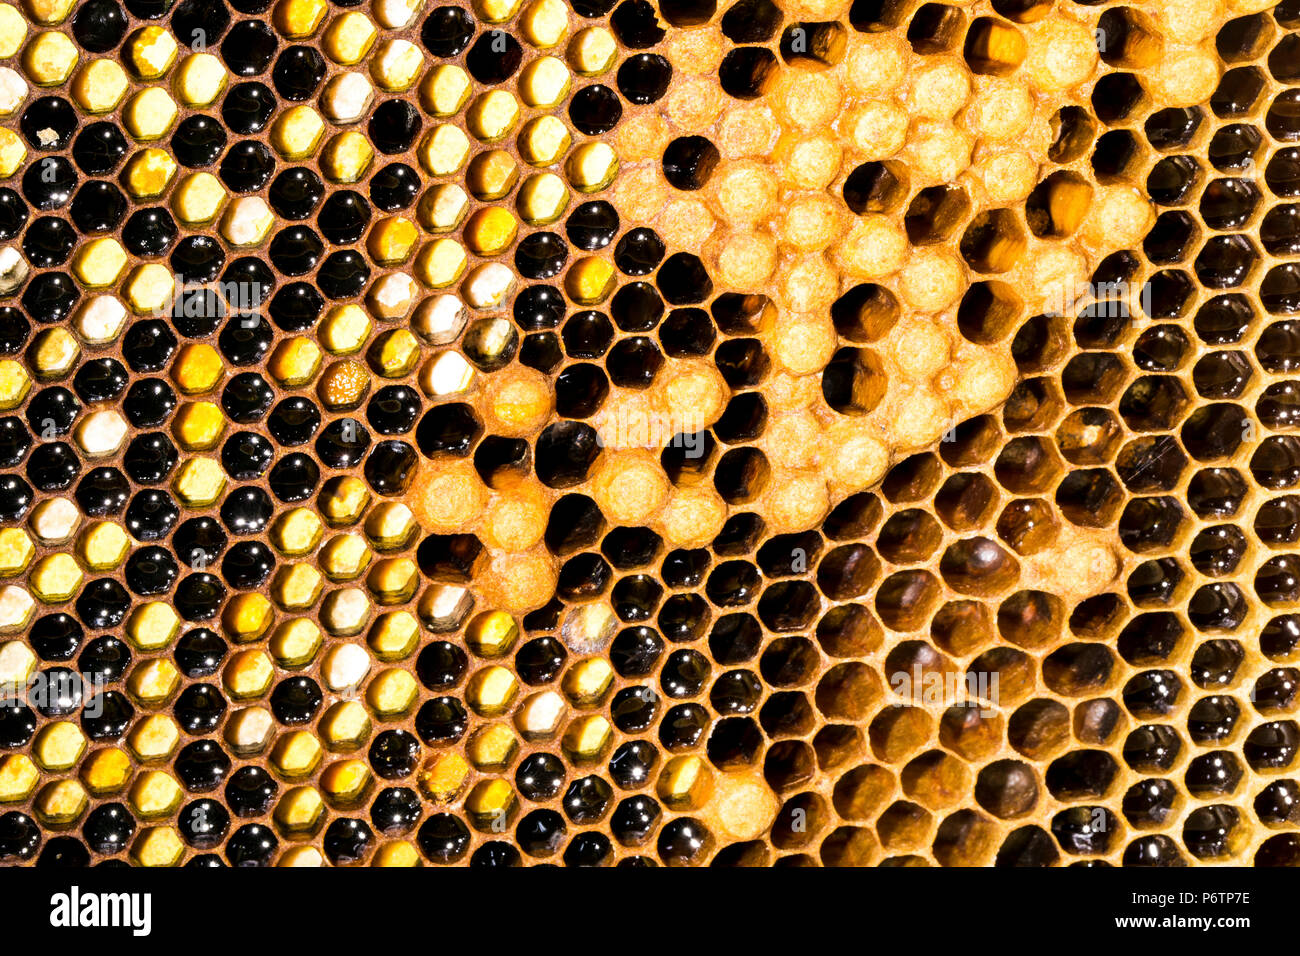 honeycomb background image, the concept of the World Wide Web - Stock Image